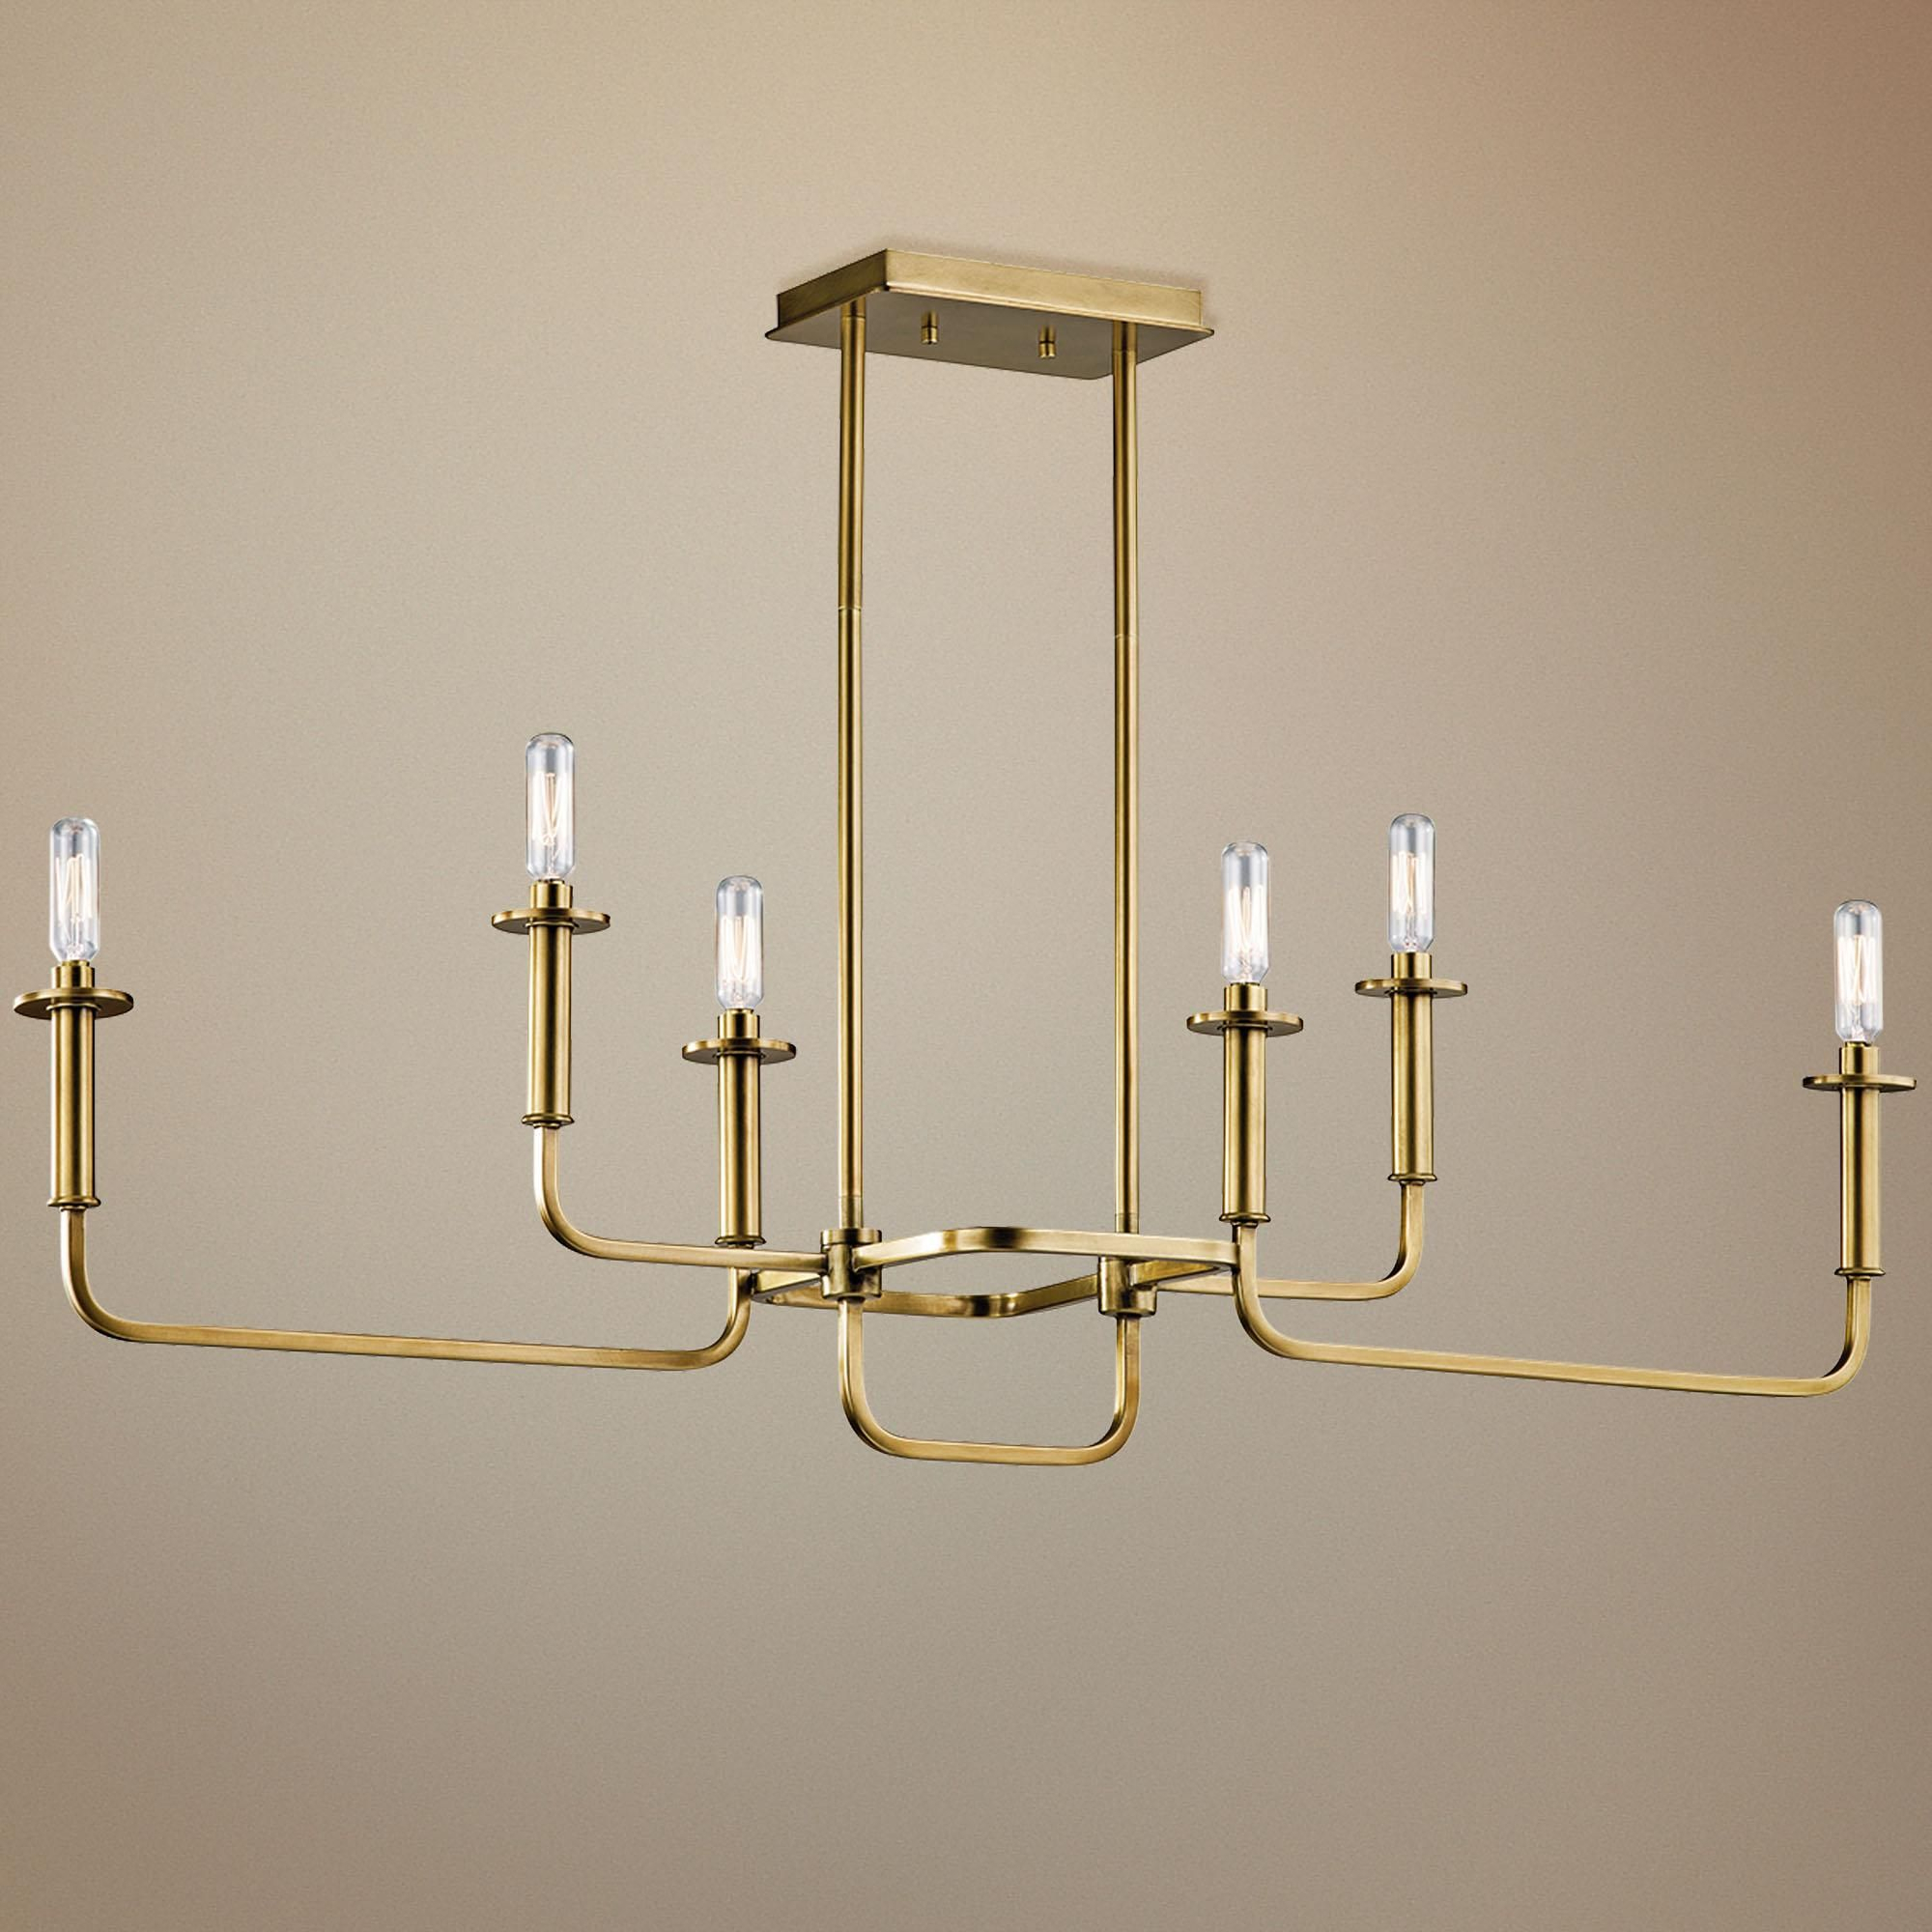 "Kichler Alden 38 1/2""w Brass 6 Light Linear Chandelier With Regard To Alden 6 Light Globe Chandeliers (Gallery 28 of 30)"